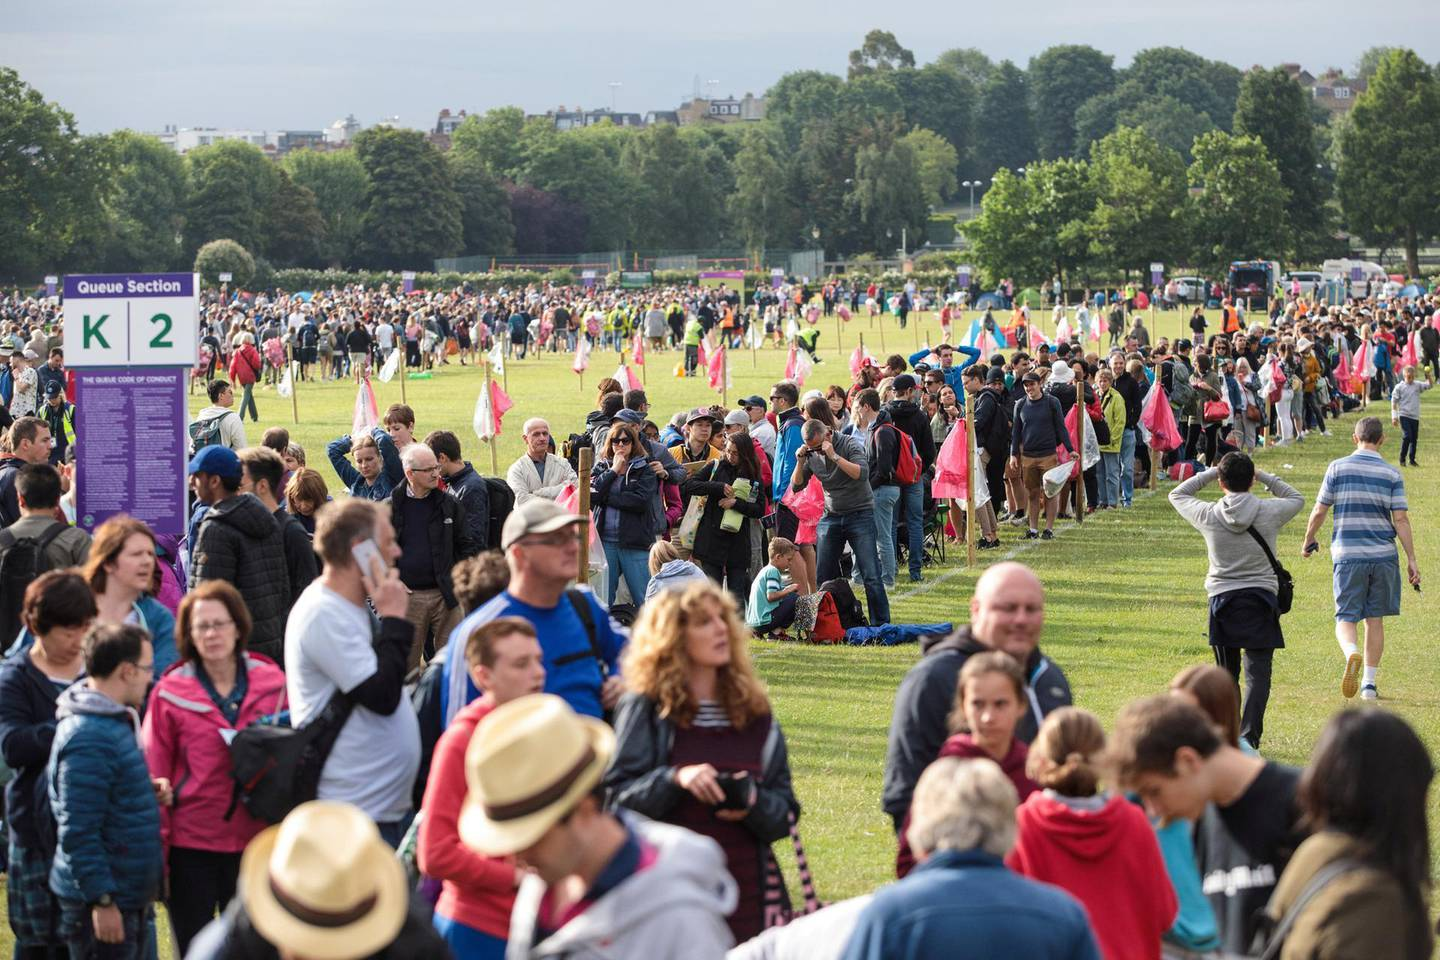 WIMBLEDON, ENGLAND - JULY 03: Tennis fans wait in line at the public queueing zone outside the All England Tennis Club on July 3, 2017 in Wimbledon, England. Thousands of tennis fans queue for tickets as the first day of the Wimbledon Tennis Championships gets underway. (Photo by Jack Taylor/Getty Images)